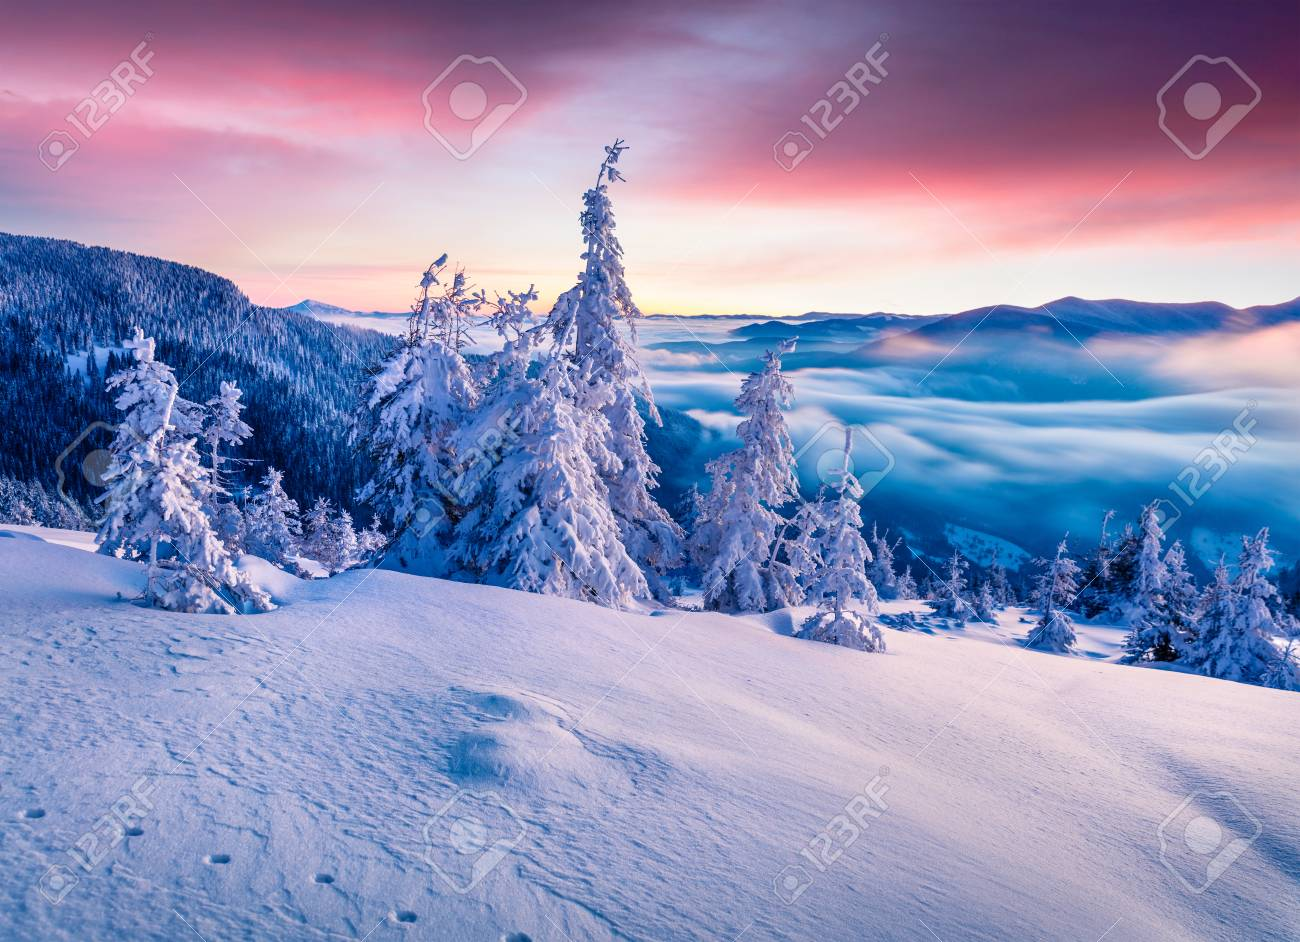 Splendid winter sunrise in Carpathian mountains with snow covered fir trees. Colorful outdoor scene, Happy New Year celebration concept. Artistic style post processed photo. - 89424452